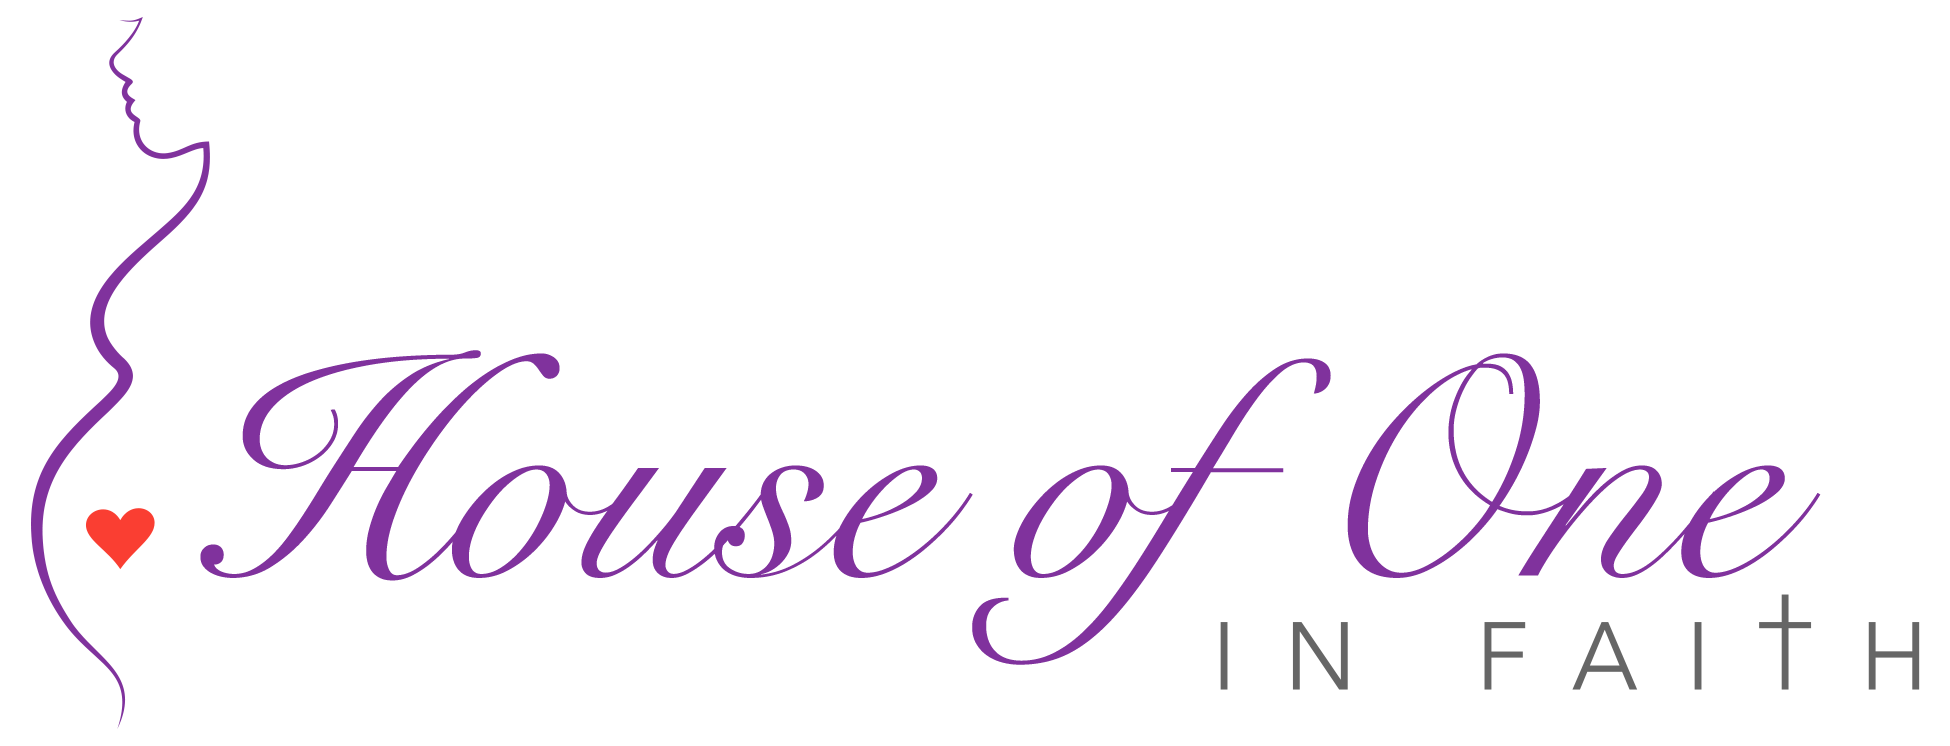 ministry logo design – House of One in Faith